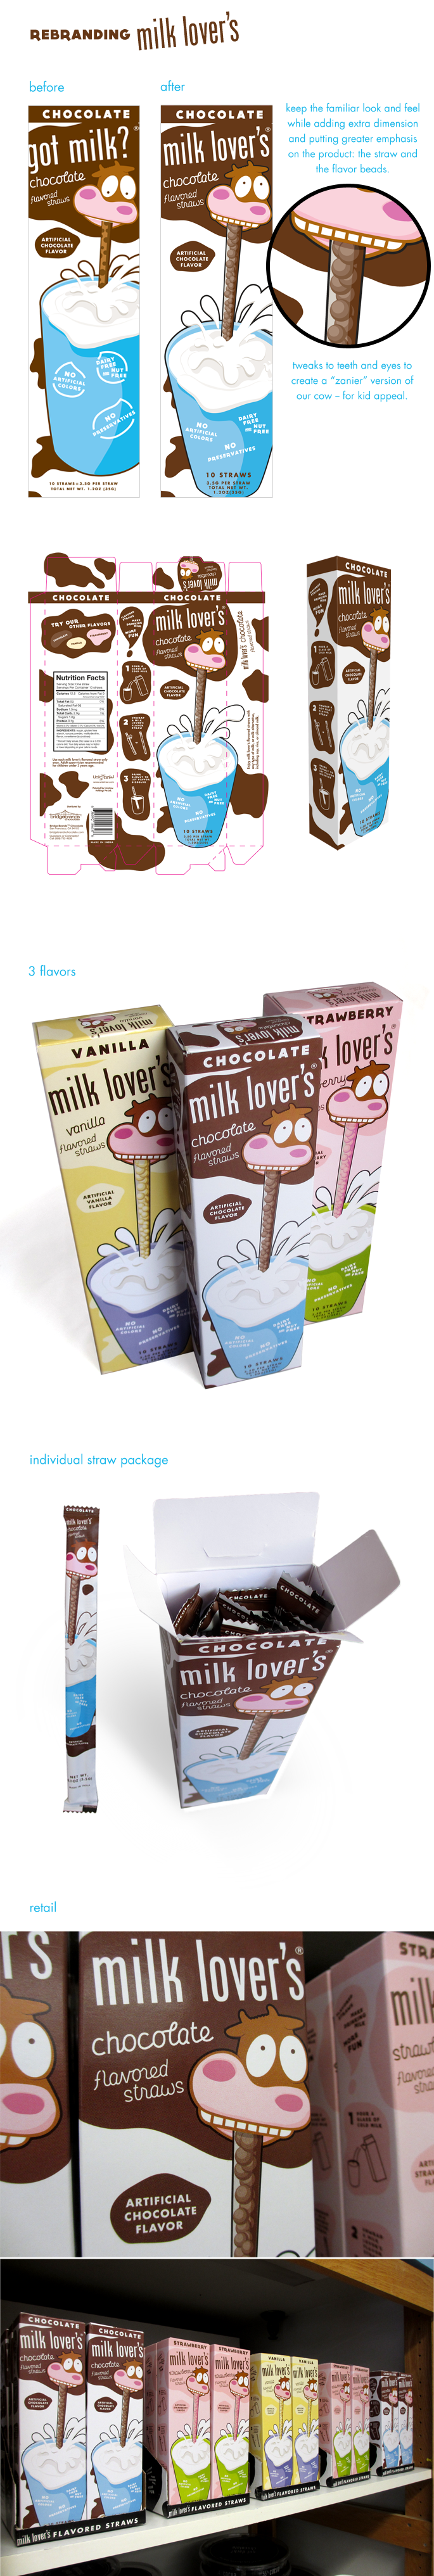 milk lovers mockup_bh